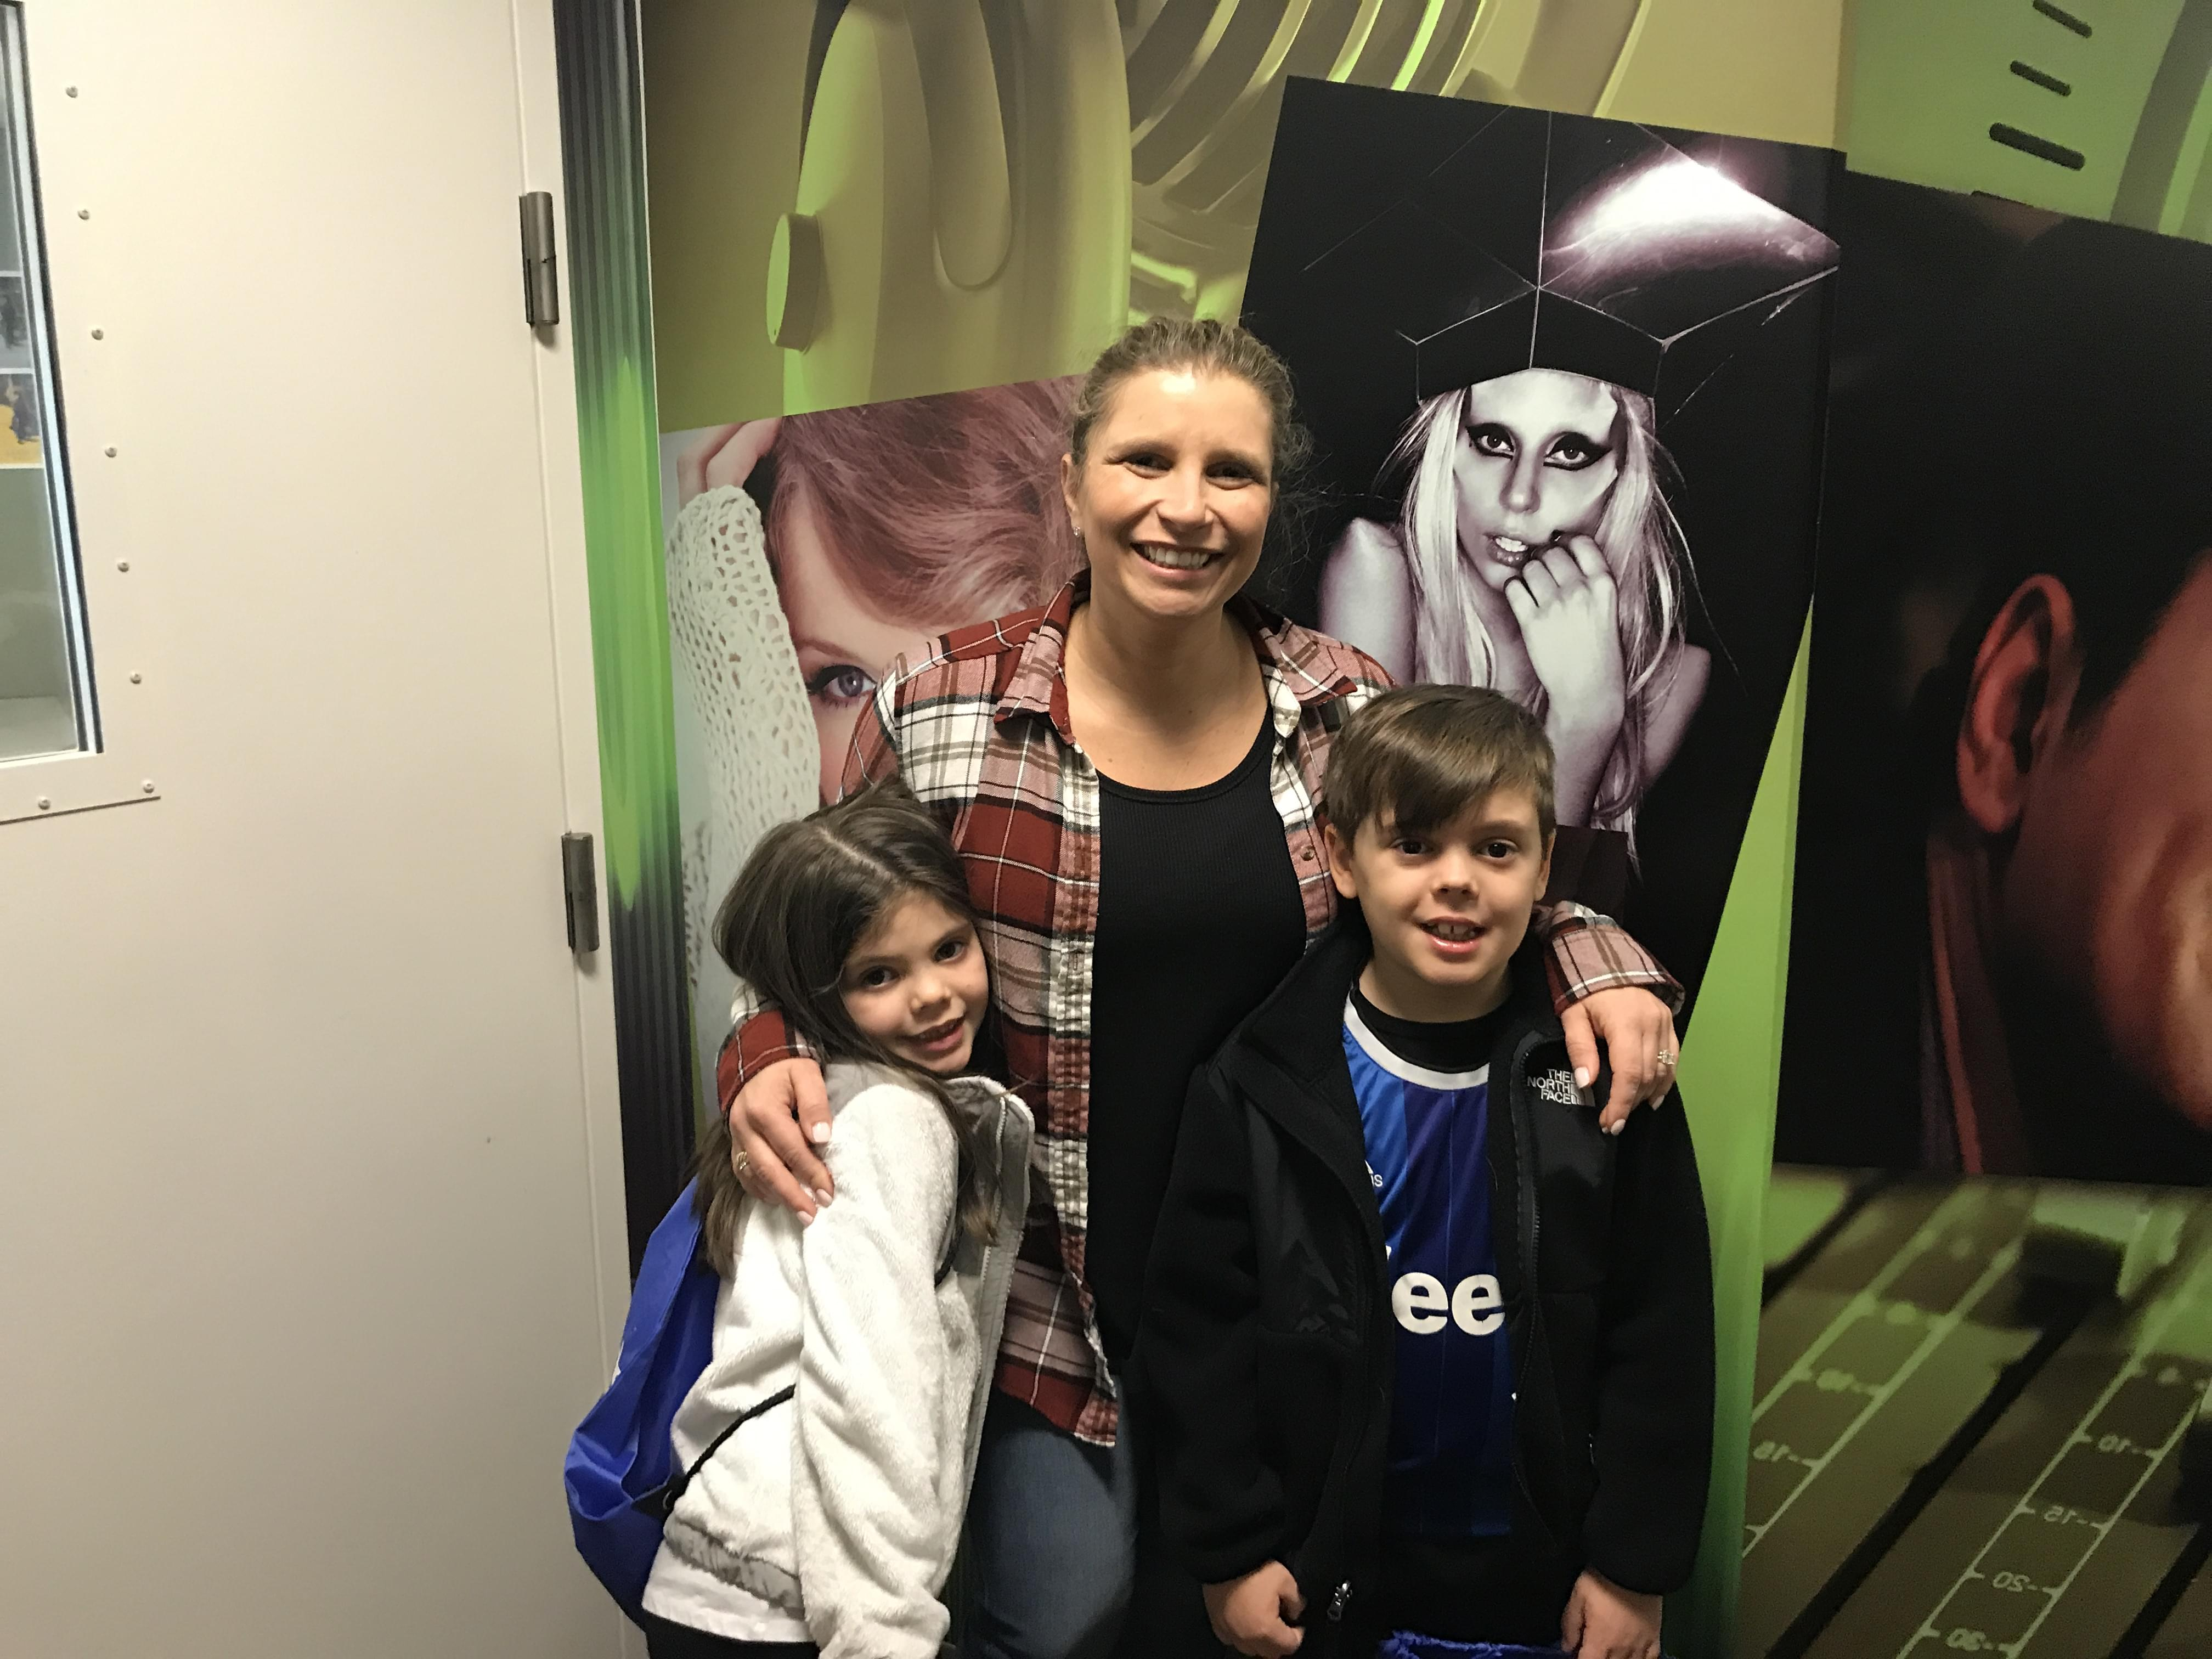 60 Seconds Behind the Scenes- Anna's nieces and nephew from Texas!